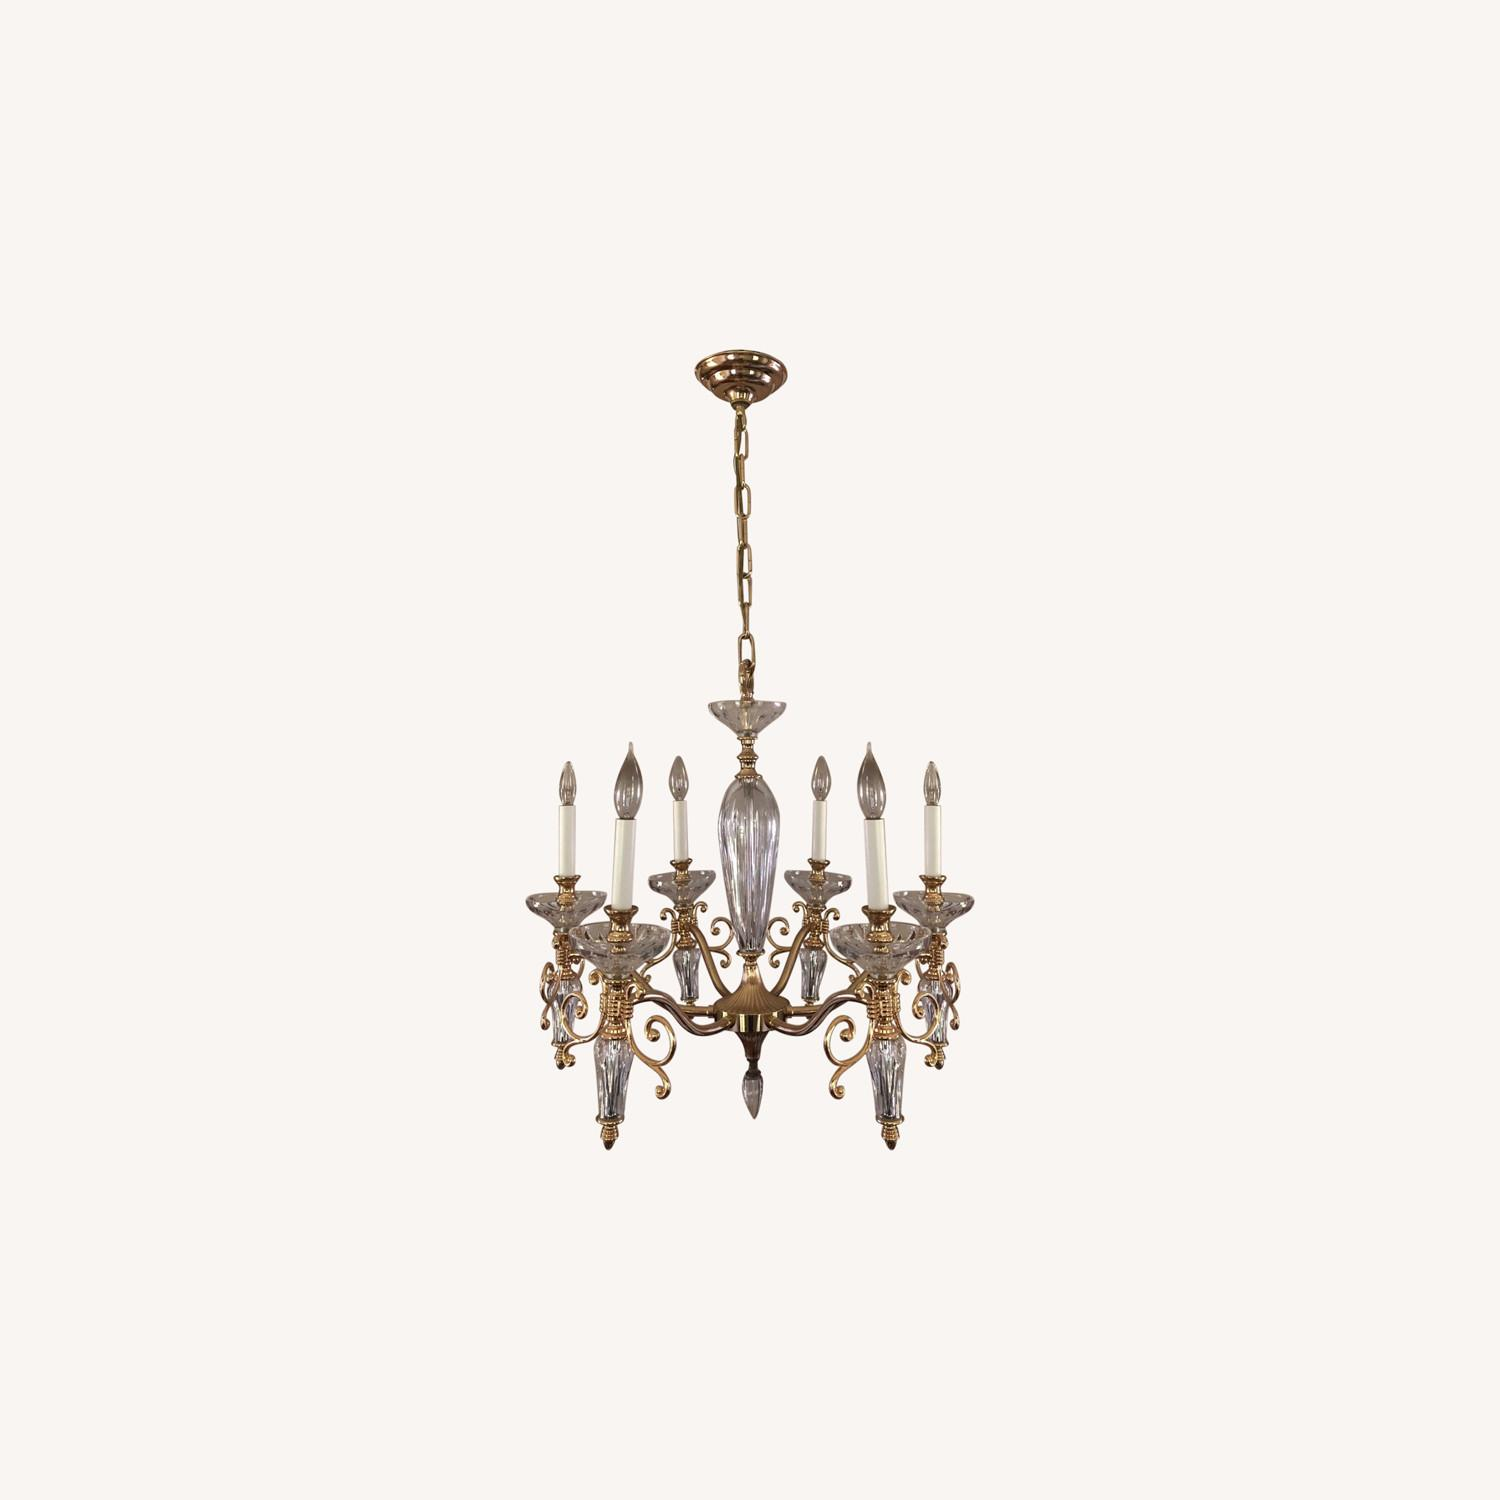 Waterford Crystal & Brass Chandelier - image-0